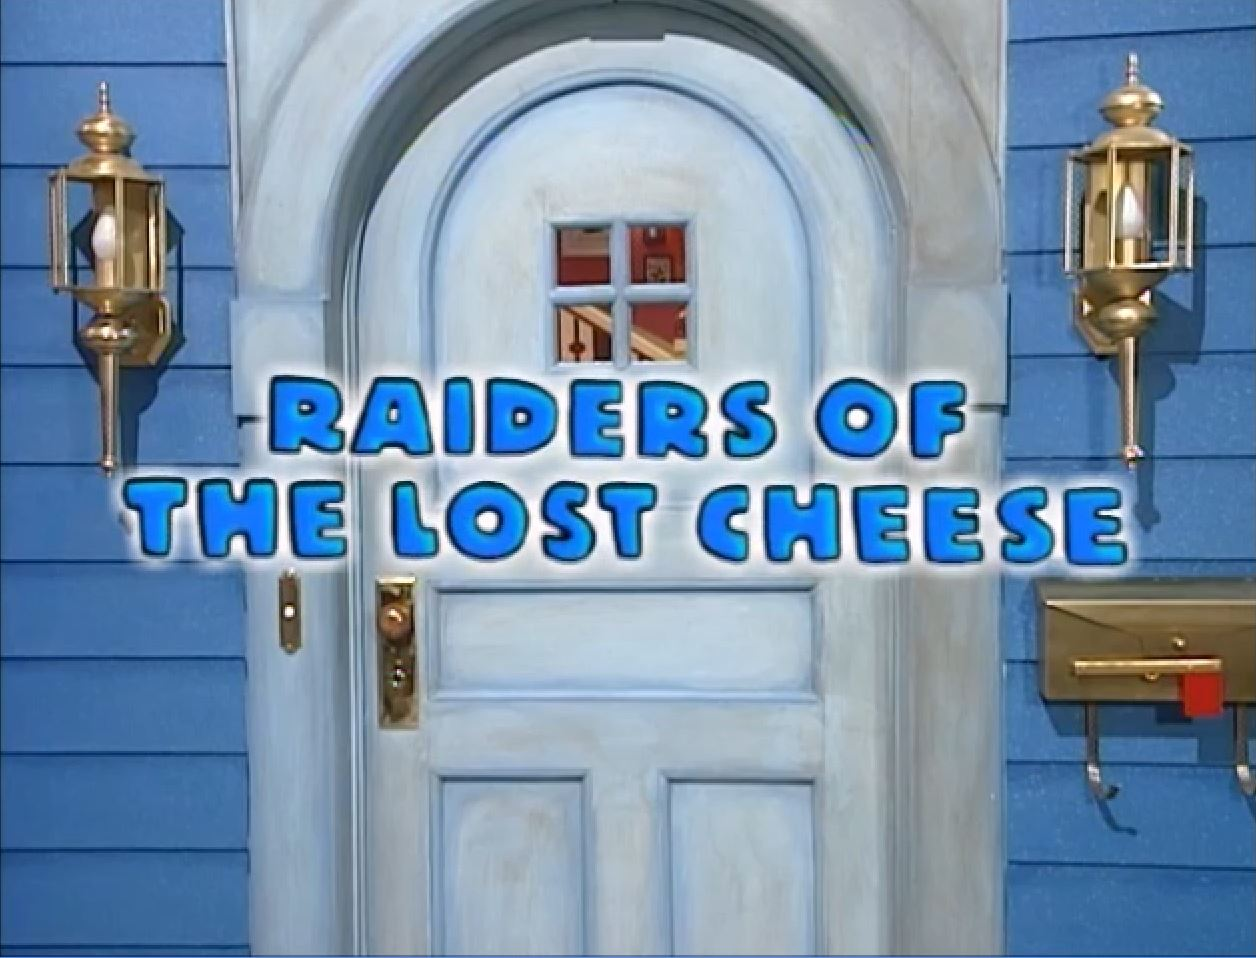 File:01 Raiders of the Lost Cheese Title Display.jpg